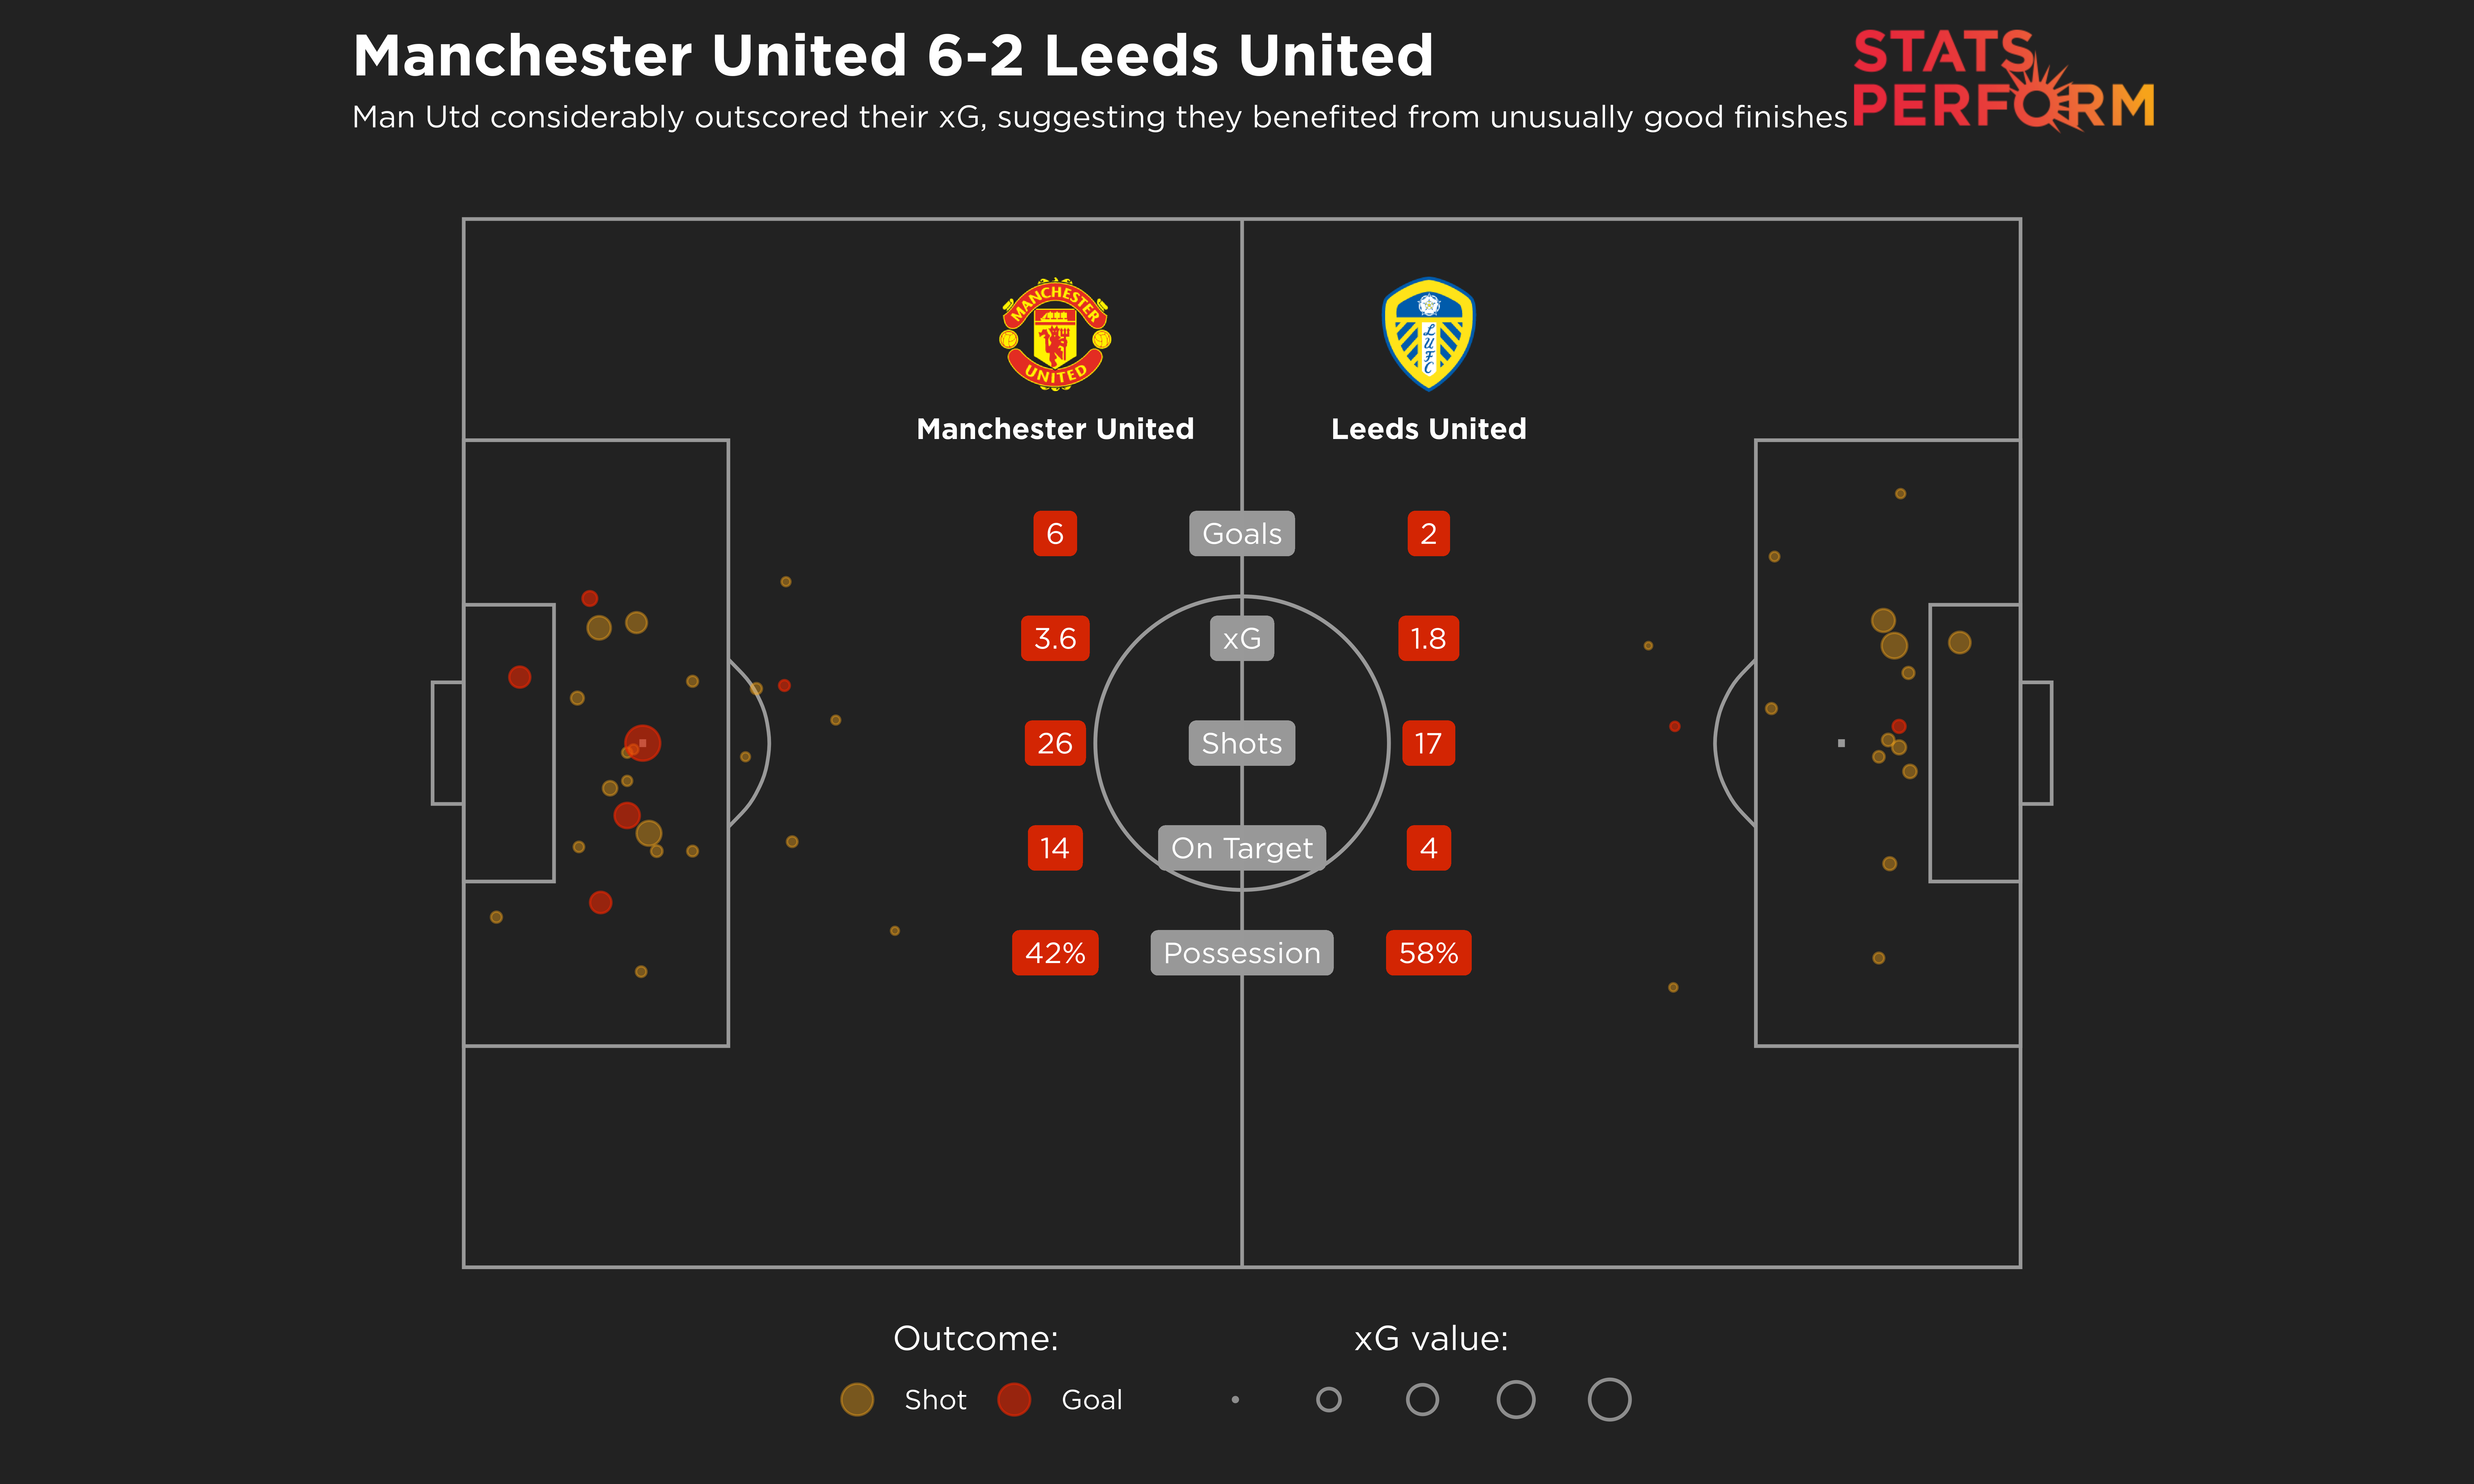 Manchester United seemed to benefit from unusually impressive finishing against Leeds